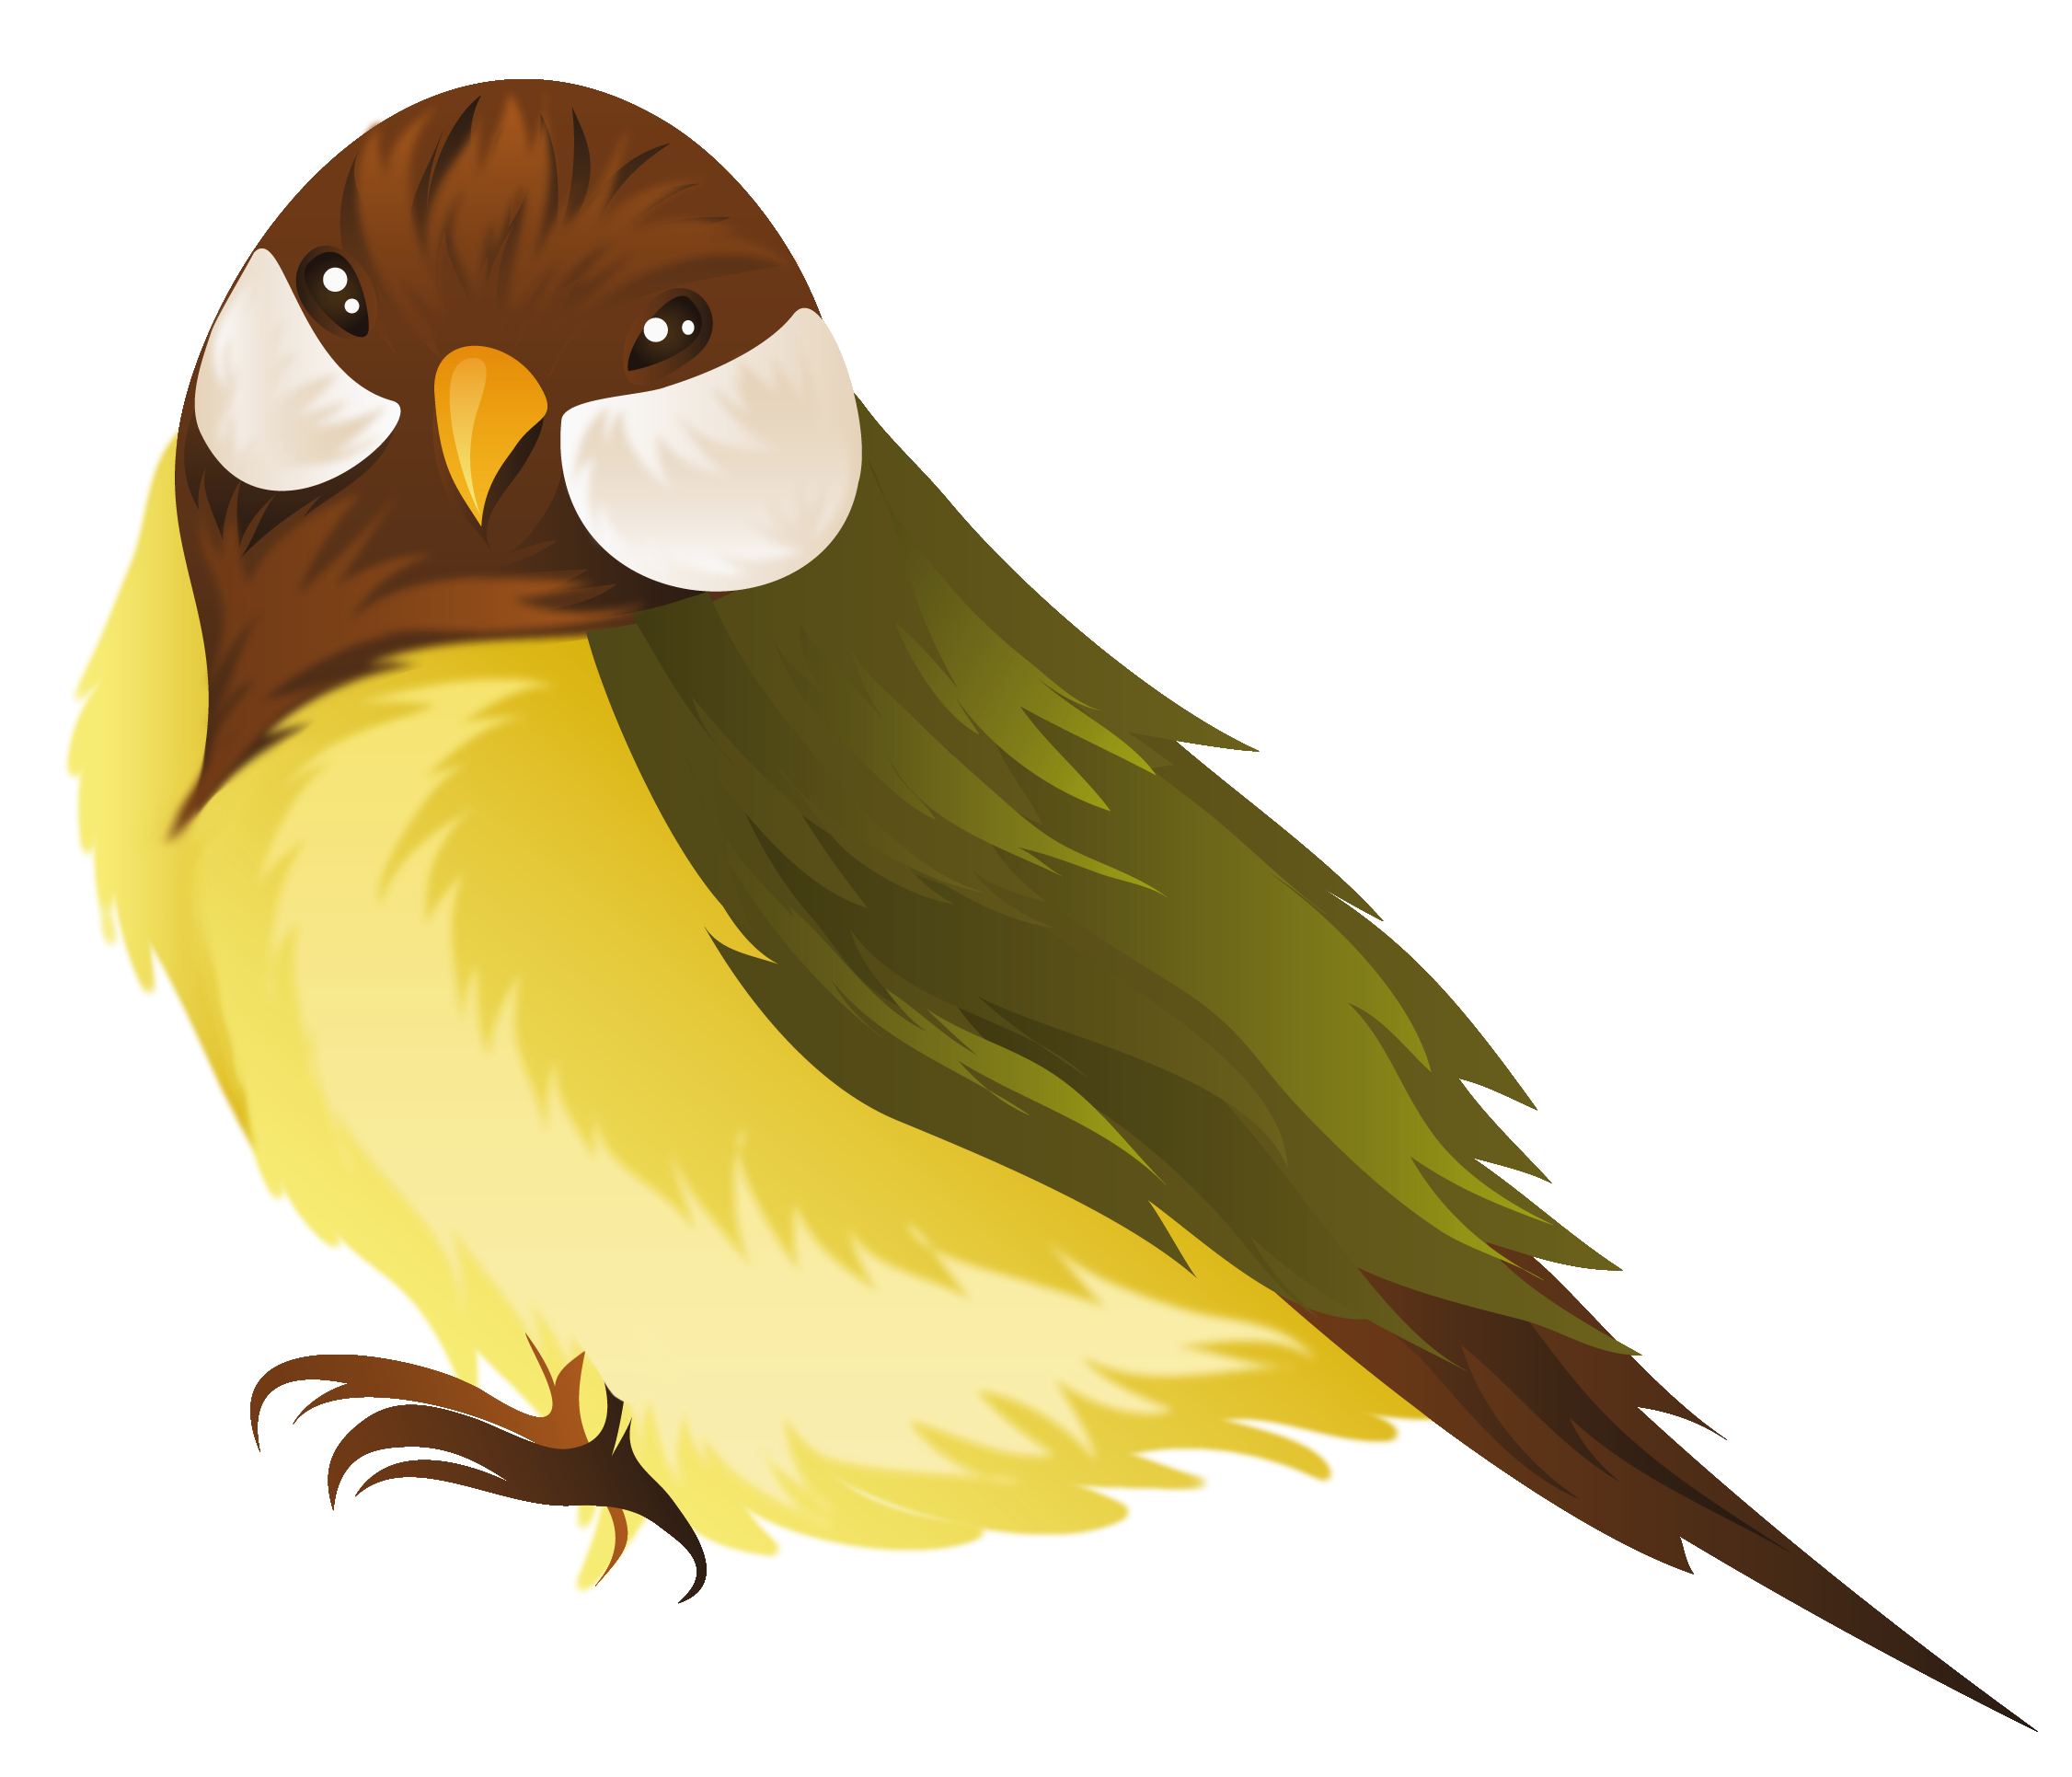 Png image gallery yopriceville. Bird clipart transparent background